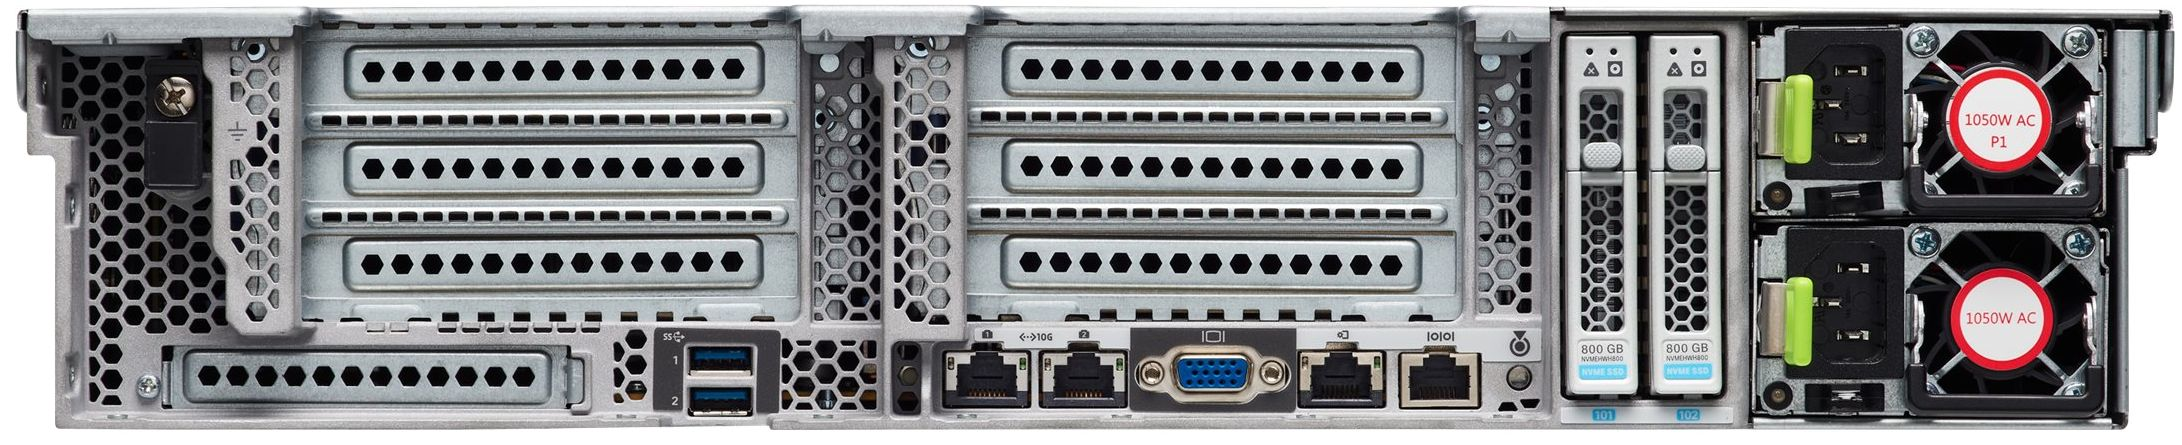 Cisco UCS C240 M5 Rear